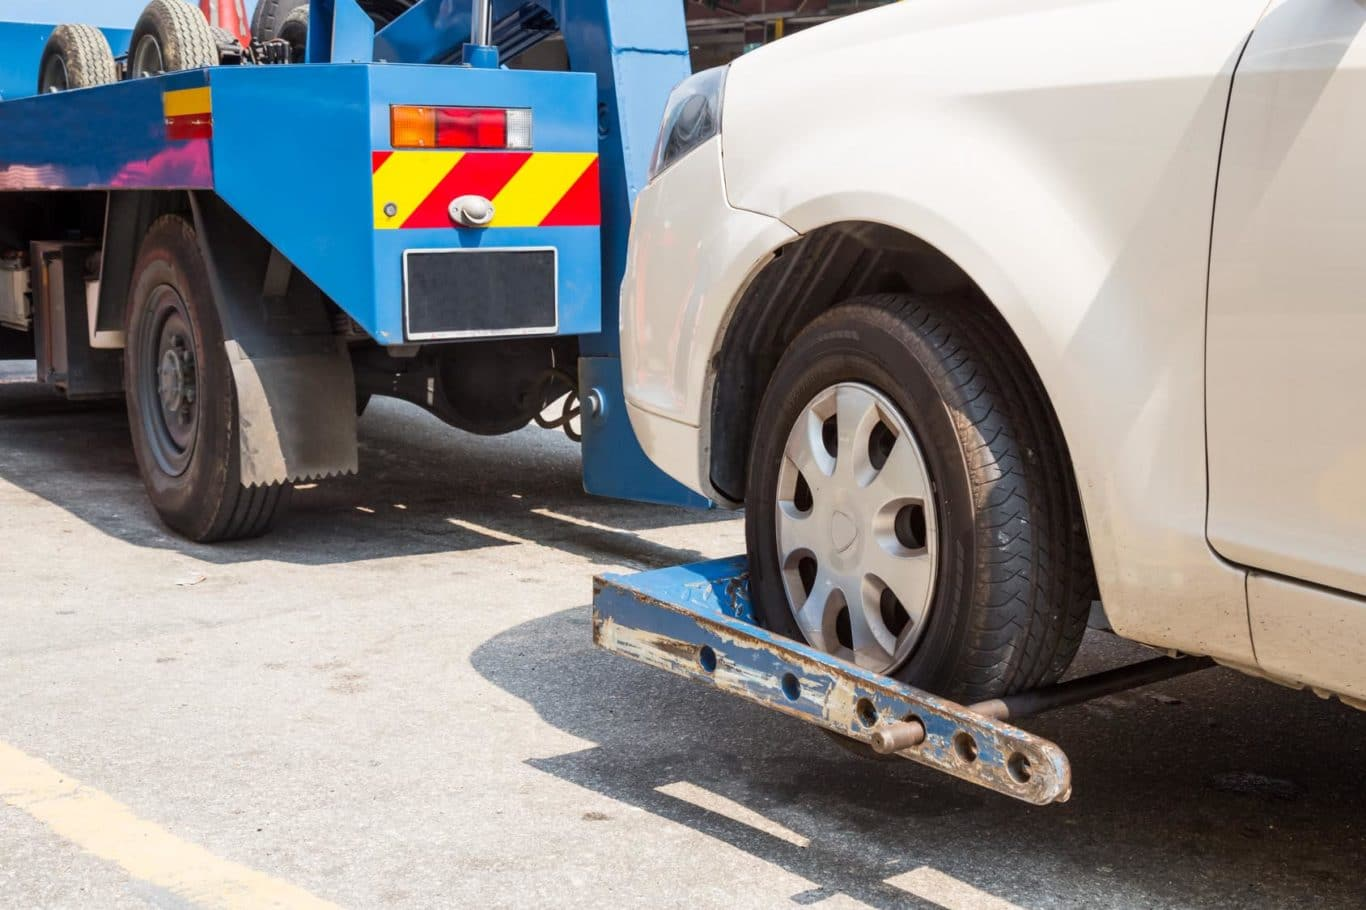 Santry expert Breakdown Assistance services